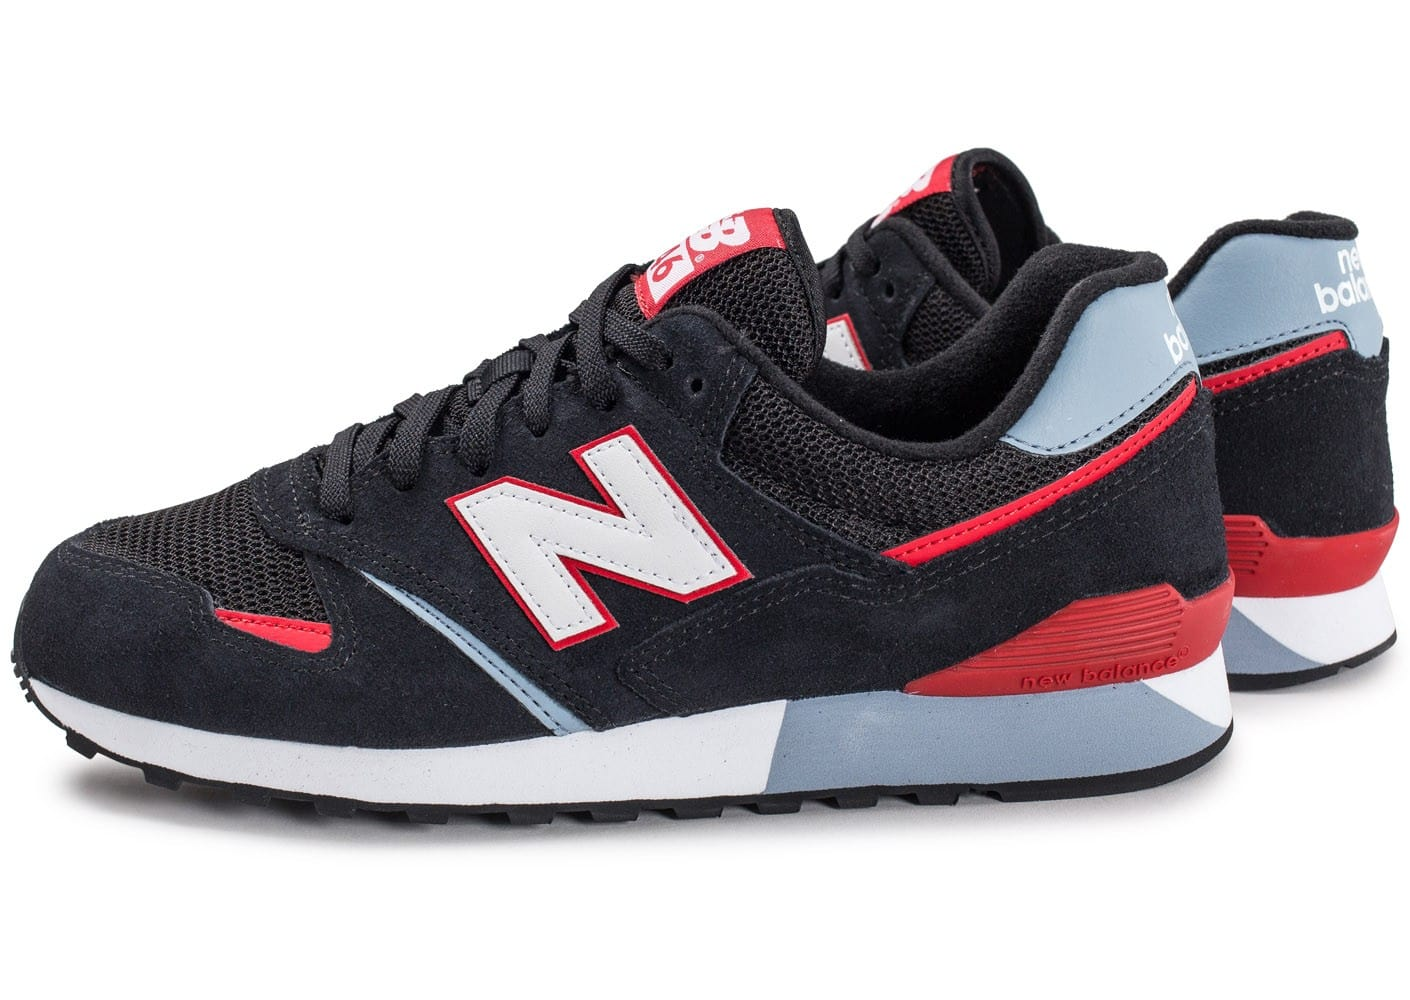 soldes new balance u446 krg noir et rouge chaussures. Black Bedroom Furniture Sets. Home Design Ideas